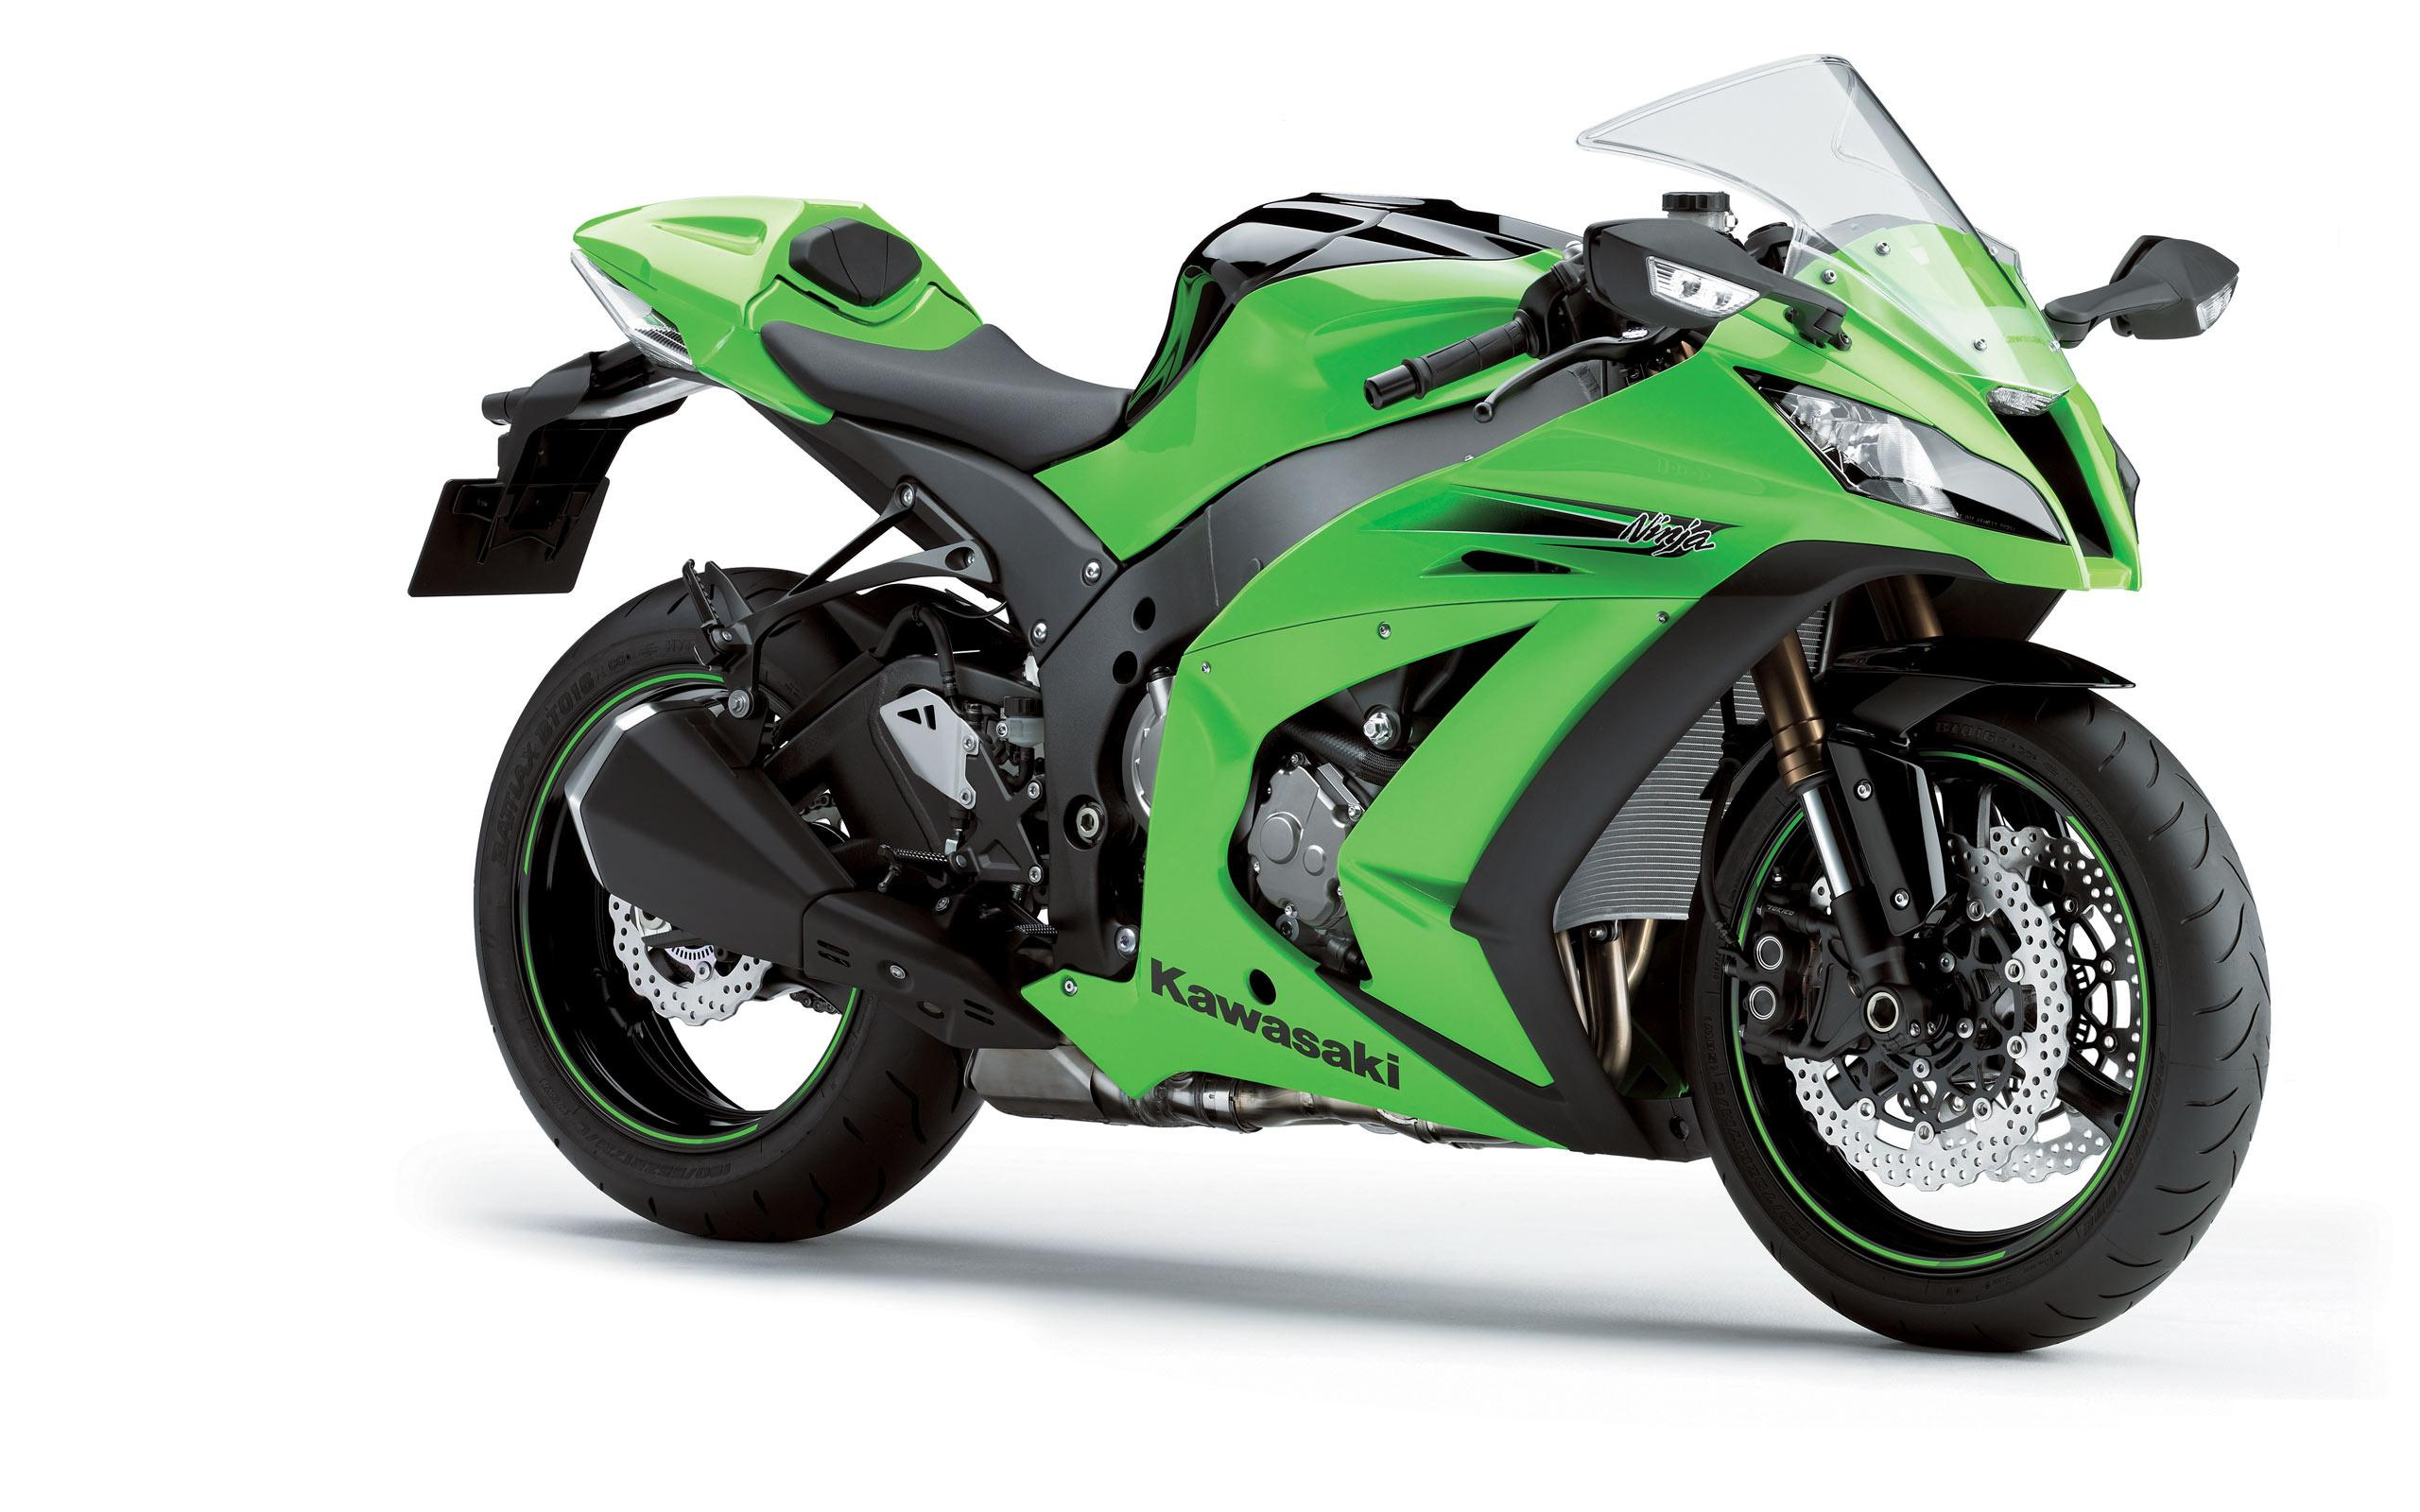 kawasaki ninja zx 6r image 4. Black Bedroom Furniture Sets. Home Design Ideas